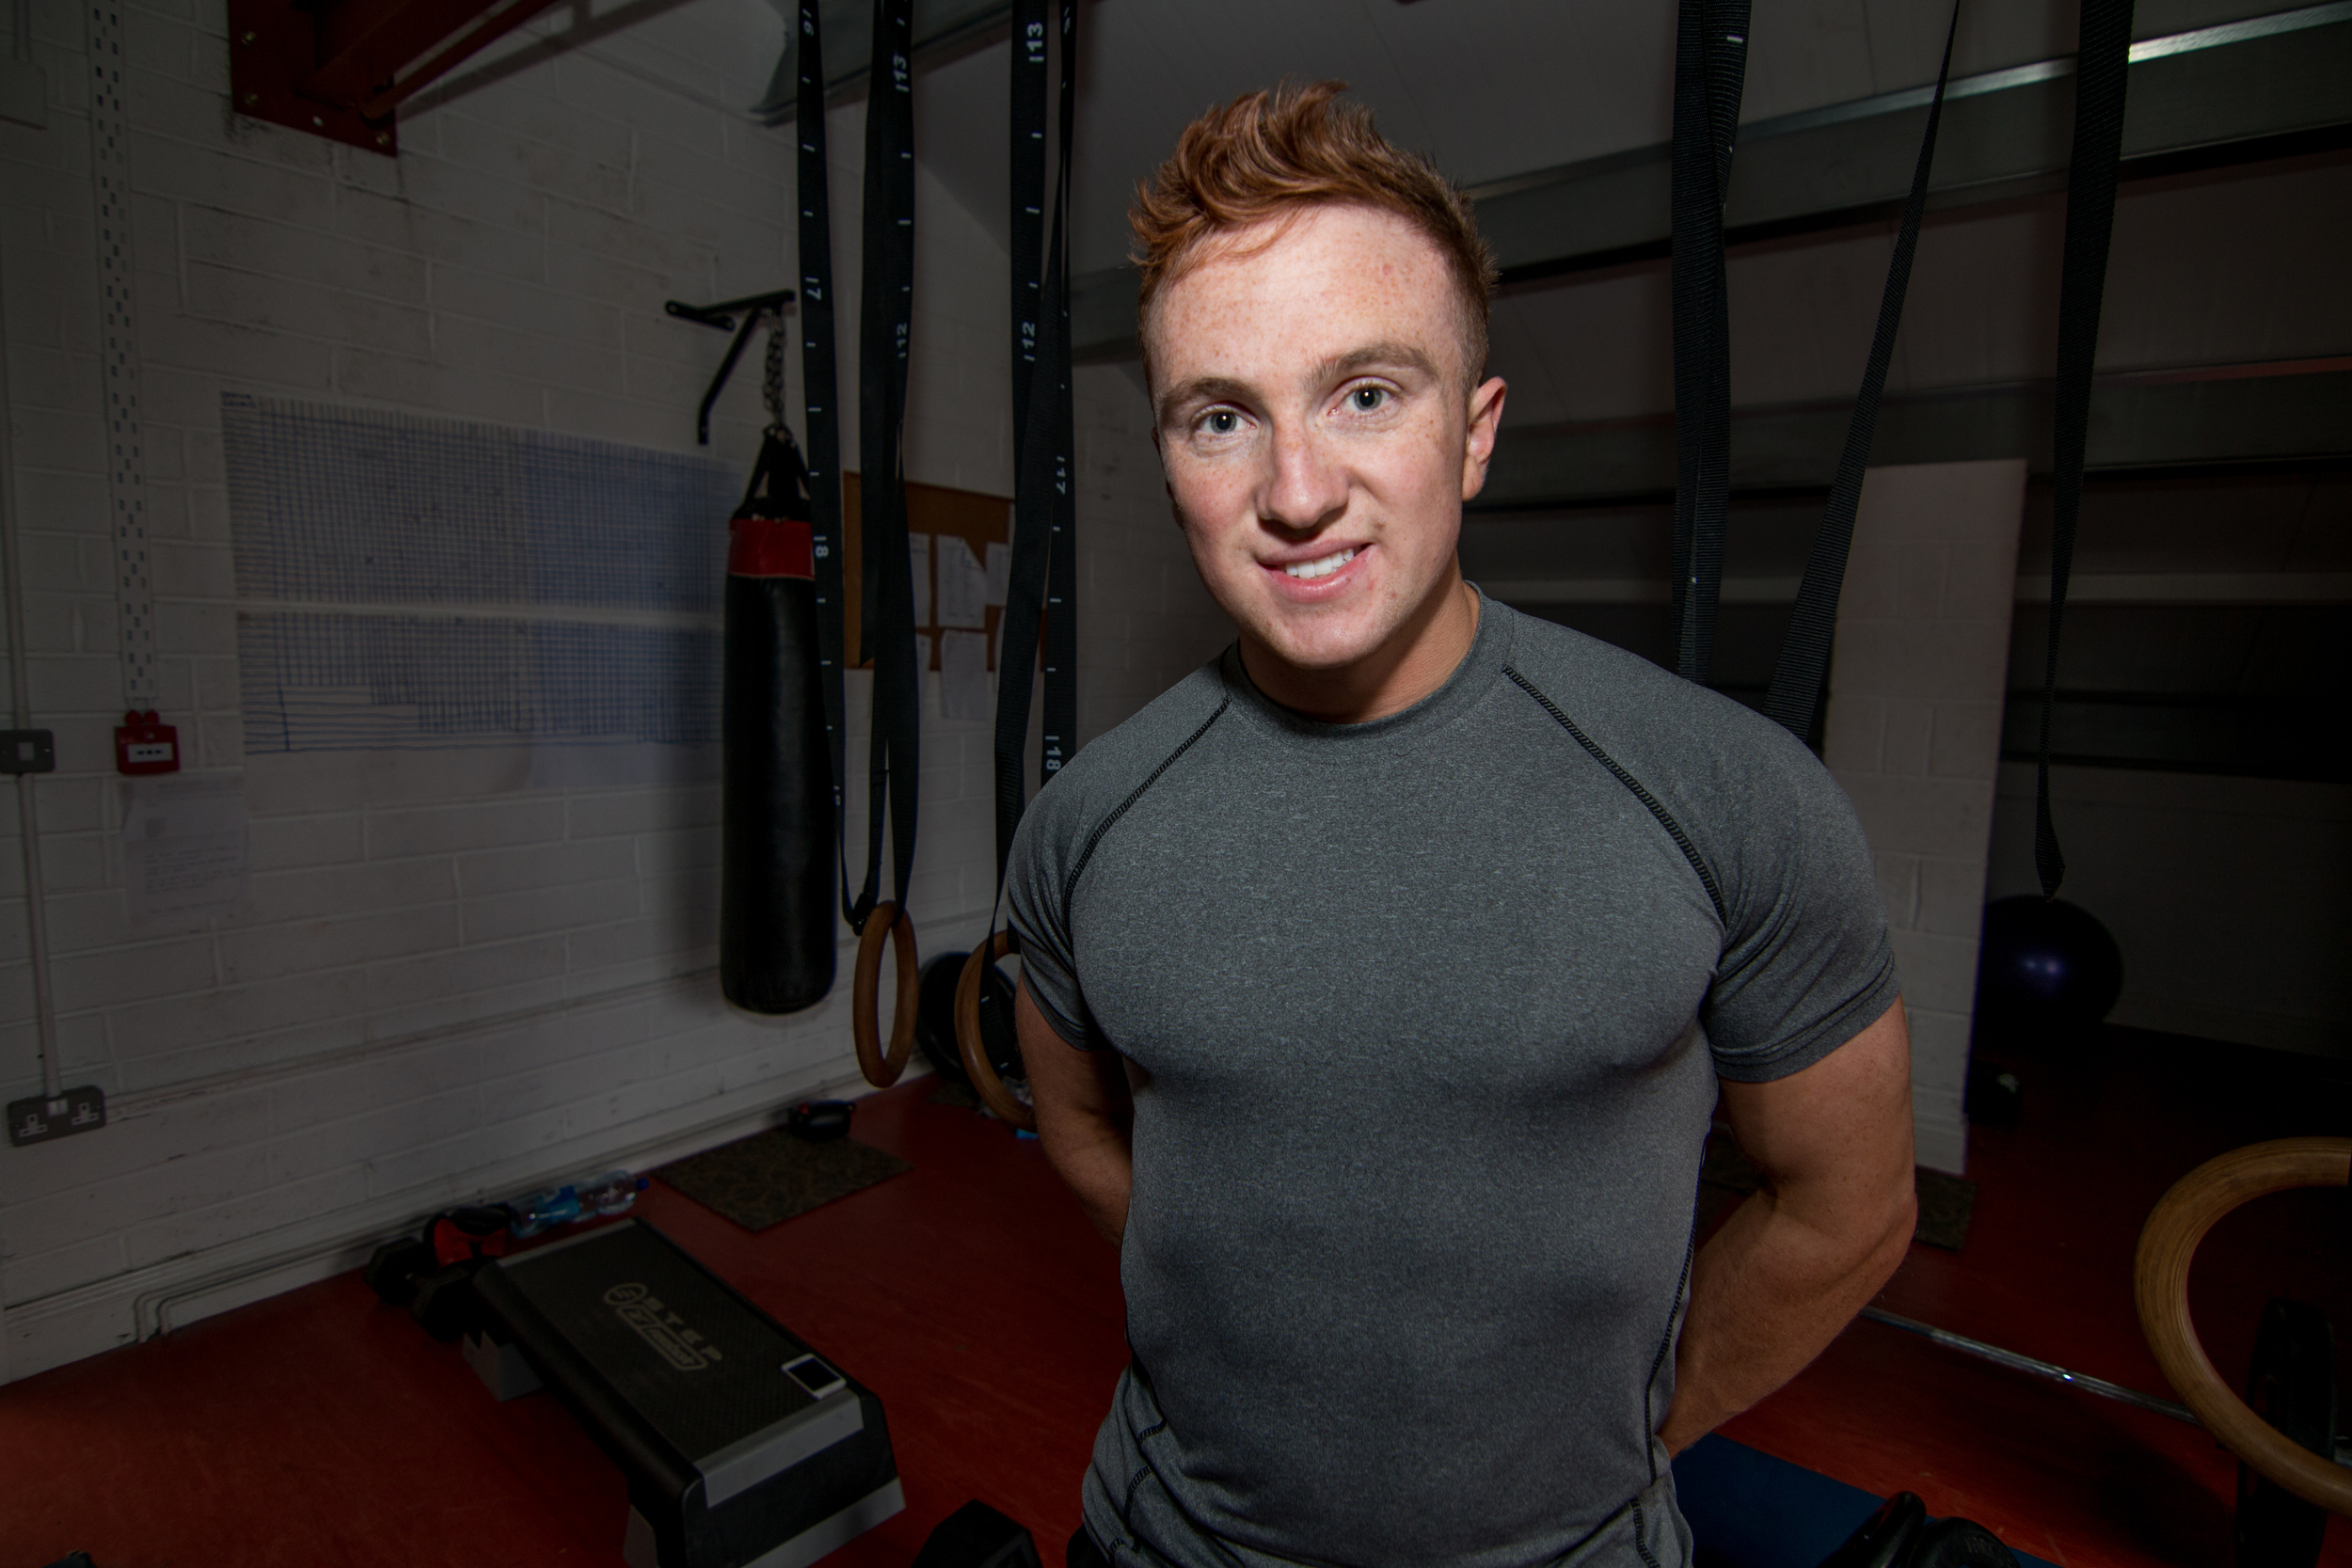 Jason is a Qualified Personal Trainer & Nutrition Advisor. His focus is on helping people lose weight, tone up & generally feel better about themselves. Jason welcomes all levels and his clients are his main priority, making sure he has everything in place for them.  Jason represented Connacht in Rugby at underage level. He won young gun of the season in the Emerald Rugby magazine in 2012 and was offered a sports scholarship to Trinity College. At present Jason qualifications in Personal Training, Spinning, Functional Training and Nutrition.  fitness / mens / ladies bootcamps / online plans / weight loss / fat loss / nutrition / meal plans / motivation / support / galway city / galway / ireland / renmore